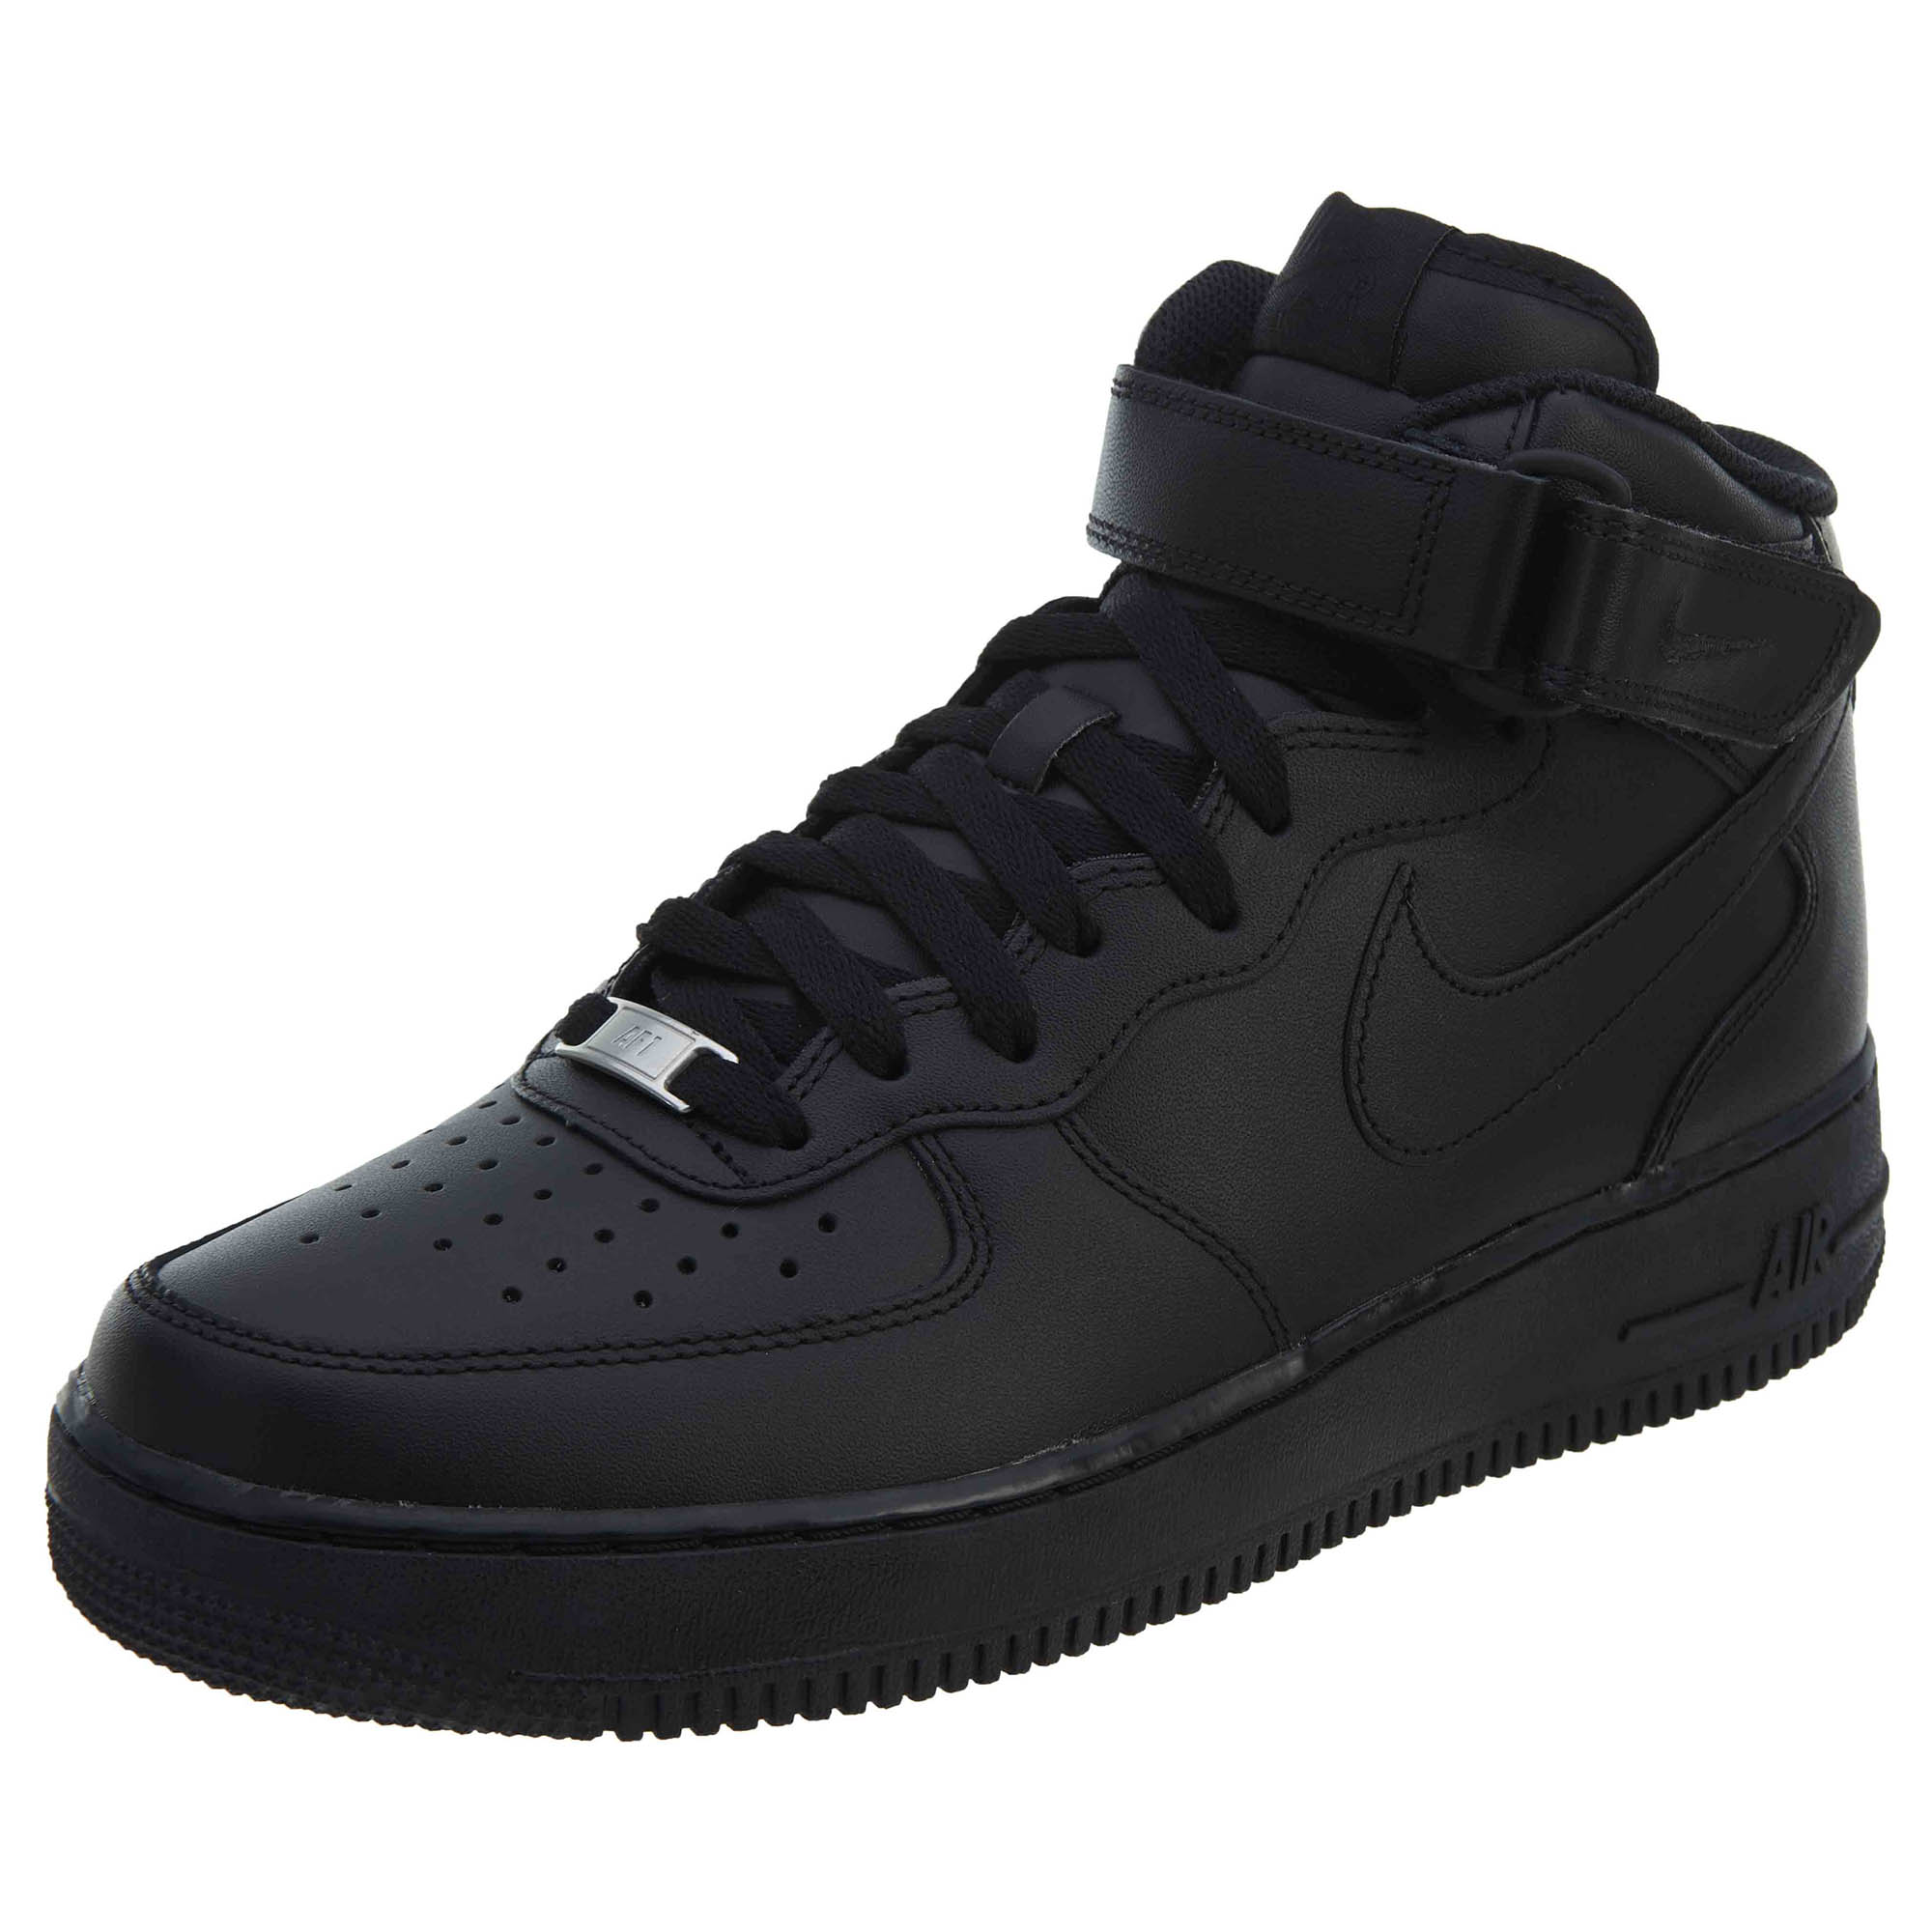 Details about Nike Men s Air Force 1 Mid Shoes Black Black 315123-001 b7380a429